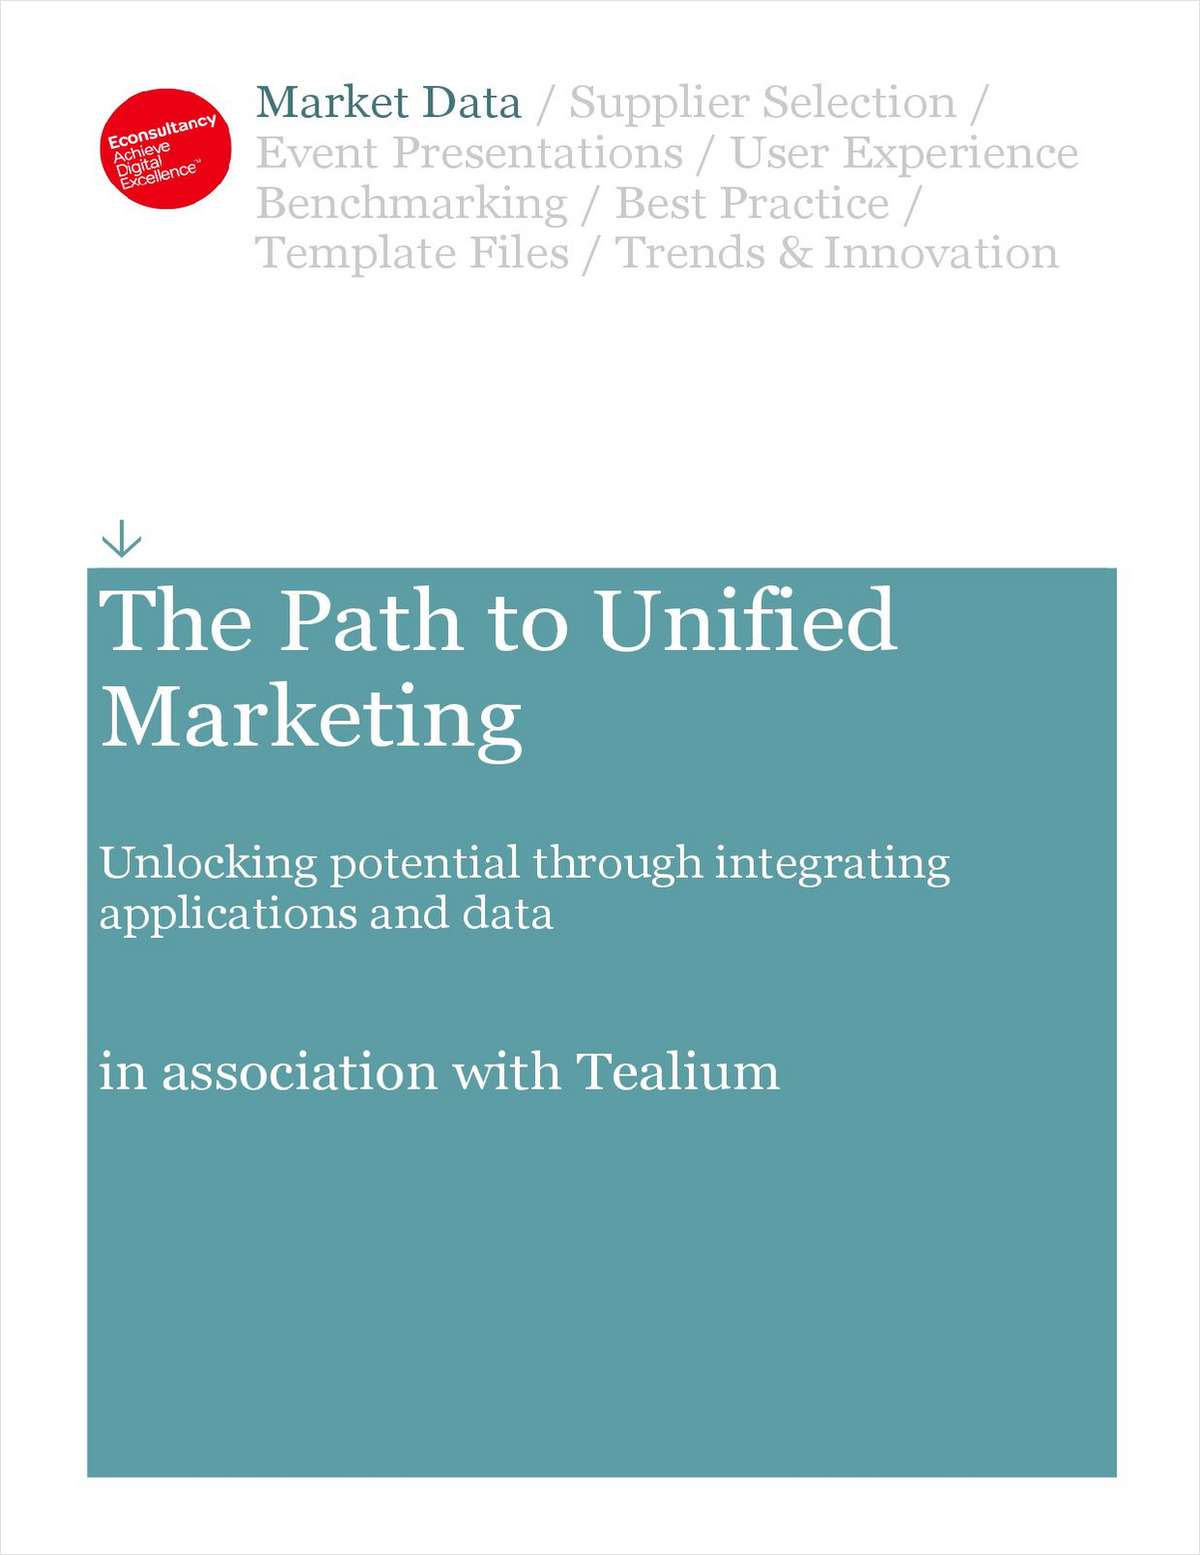 The Path to Unified Marketing: Unlock Potential Through Integrated Applications and Data